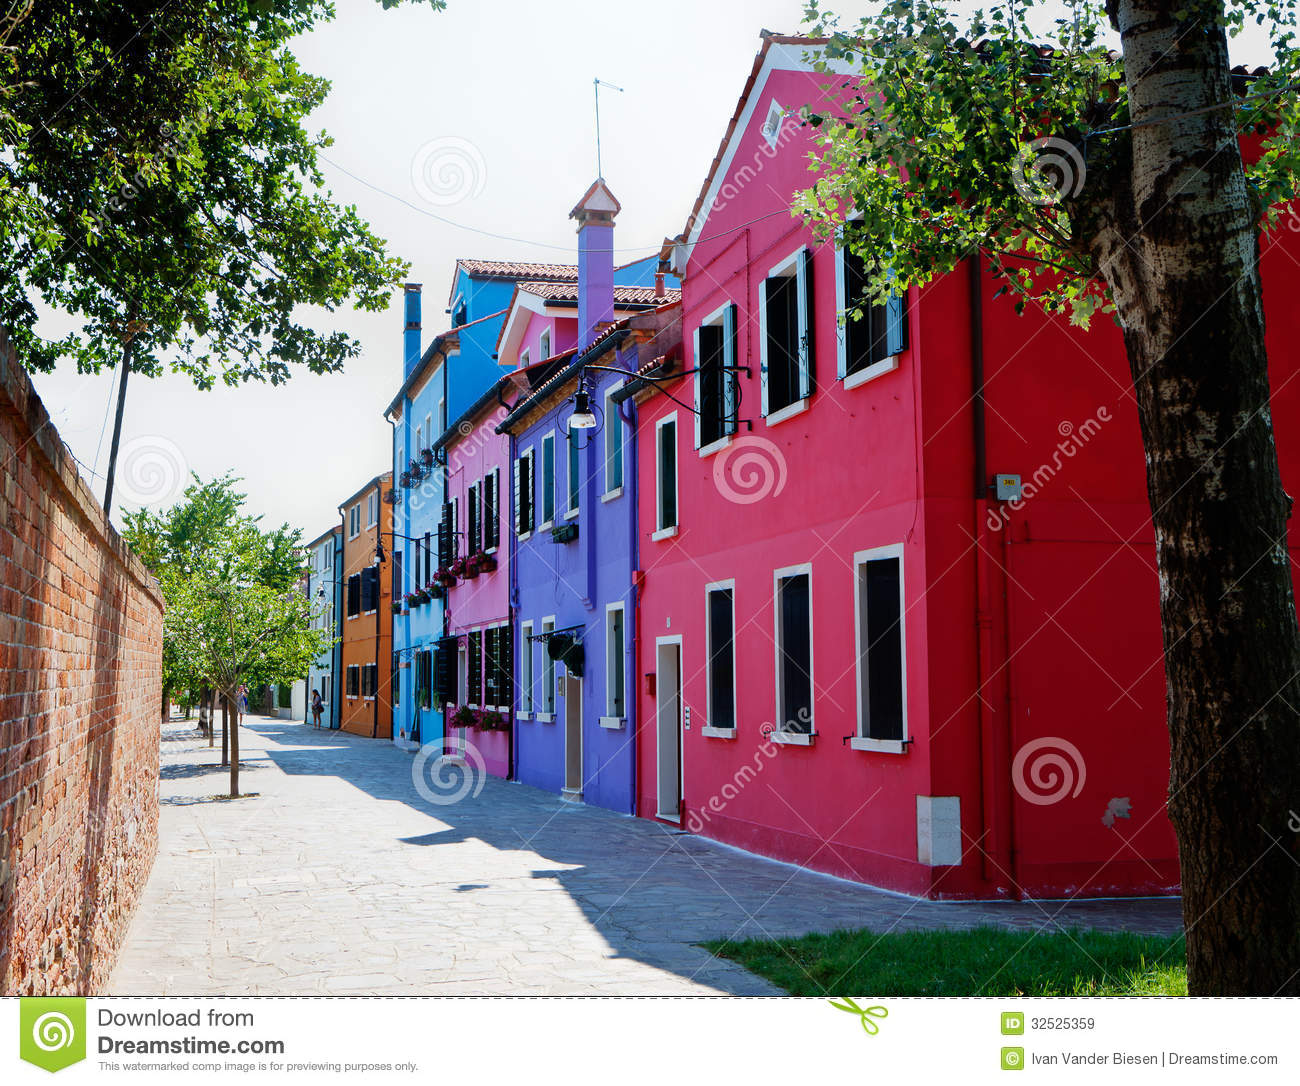 Street with colorful houses in Burano, Italy